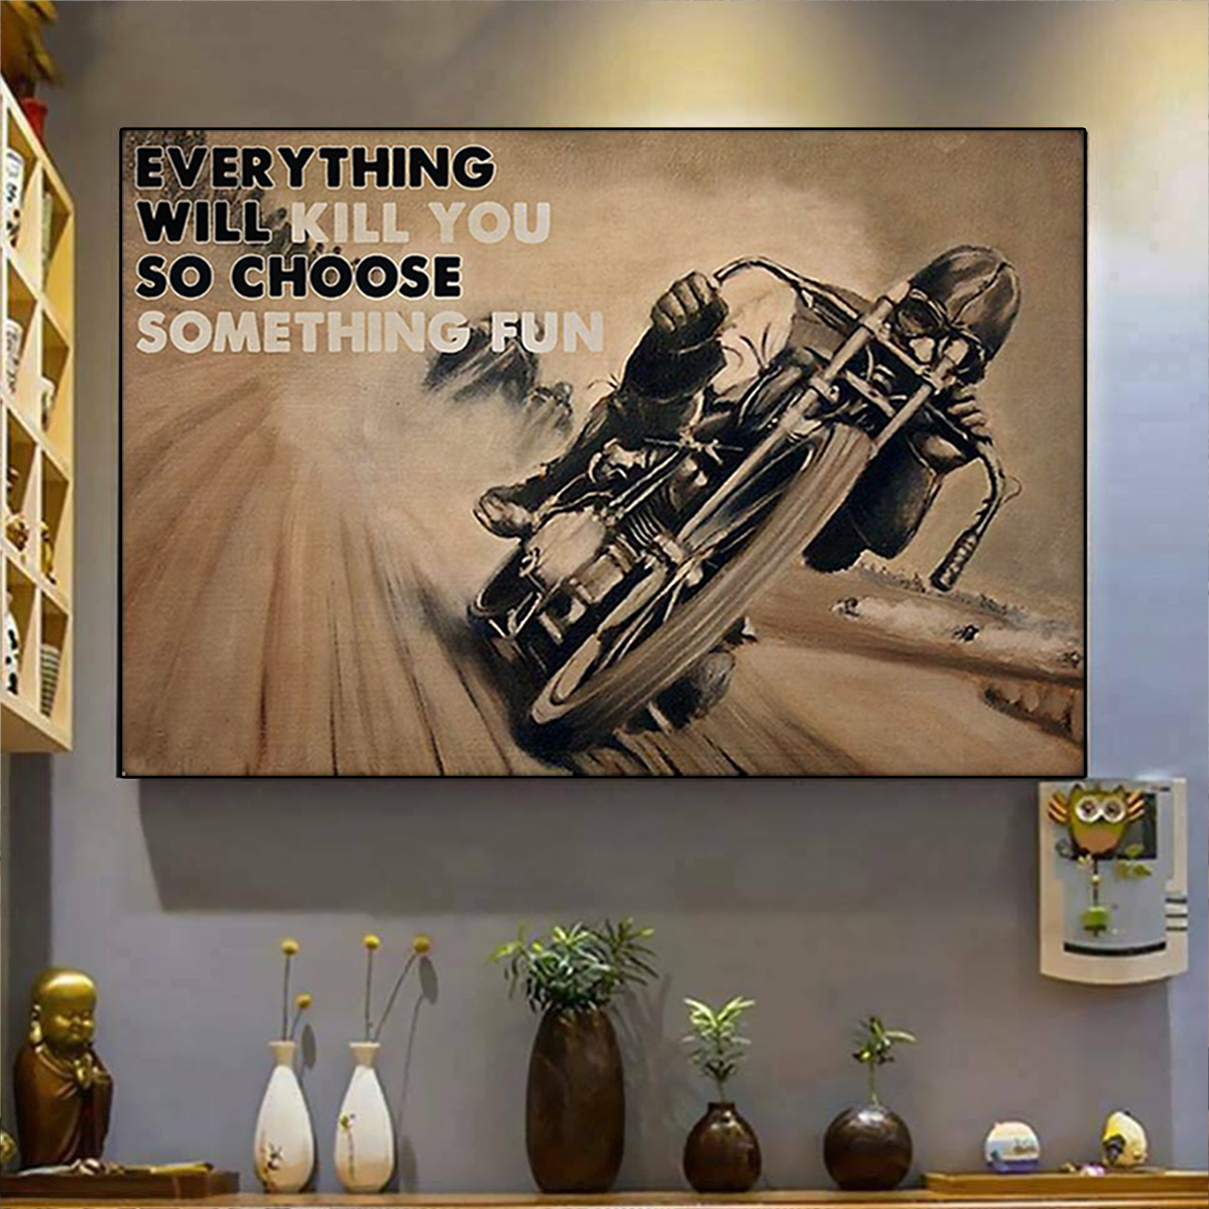 Motorbike racing everything will kill you so choose something fun poster A3